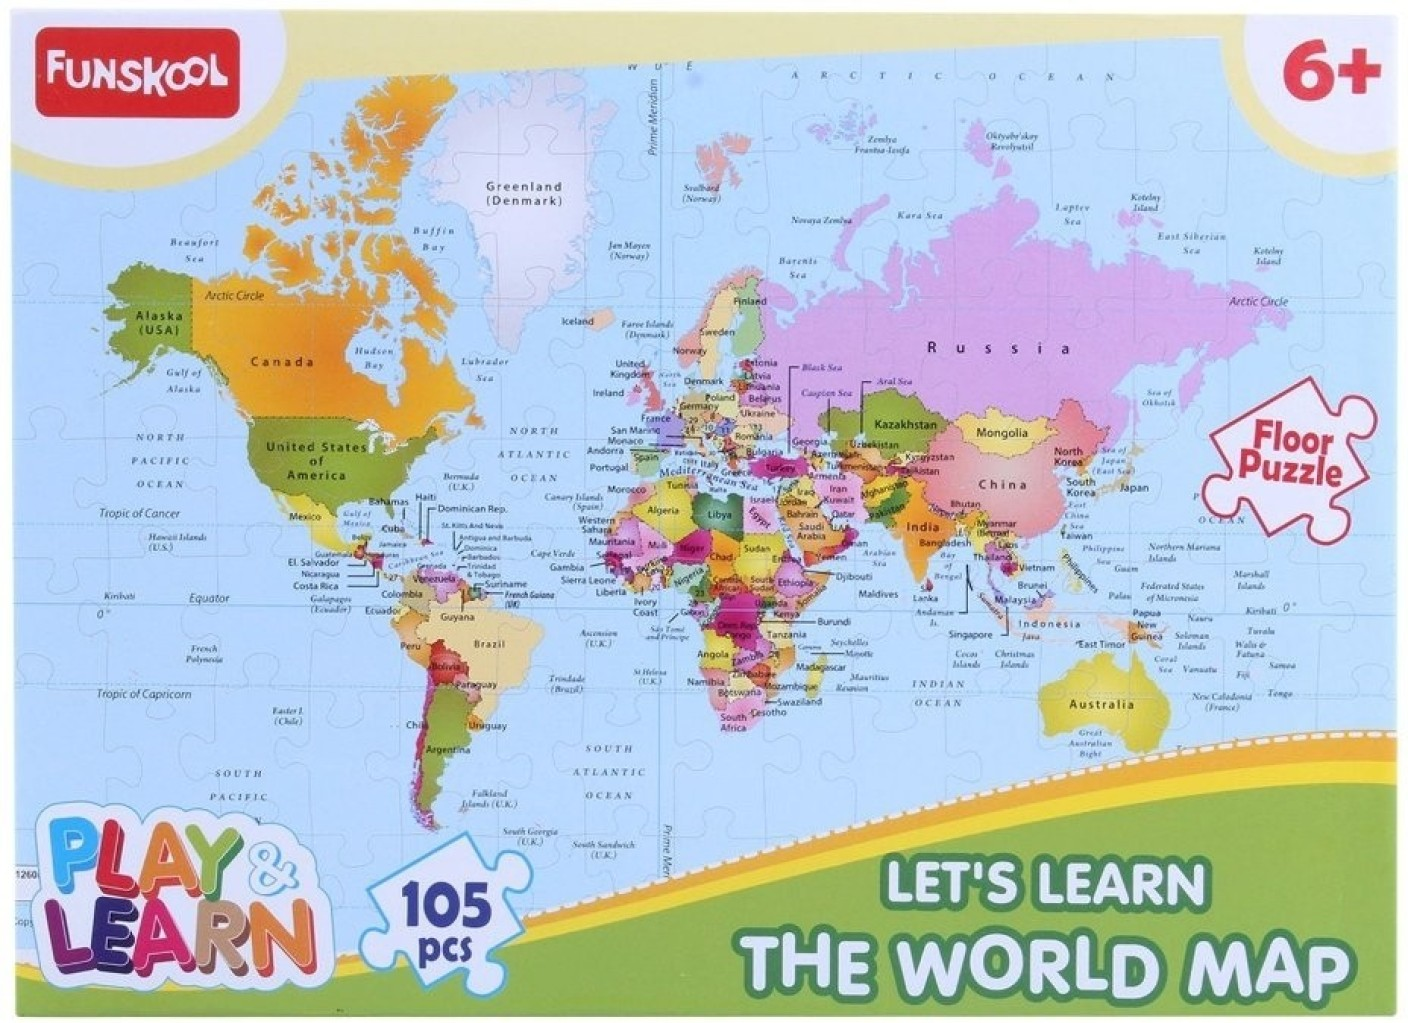 Funskool world map puzzles educational game world map puzzles funskool world map puzzles educational game on offer sciox Image collections